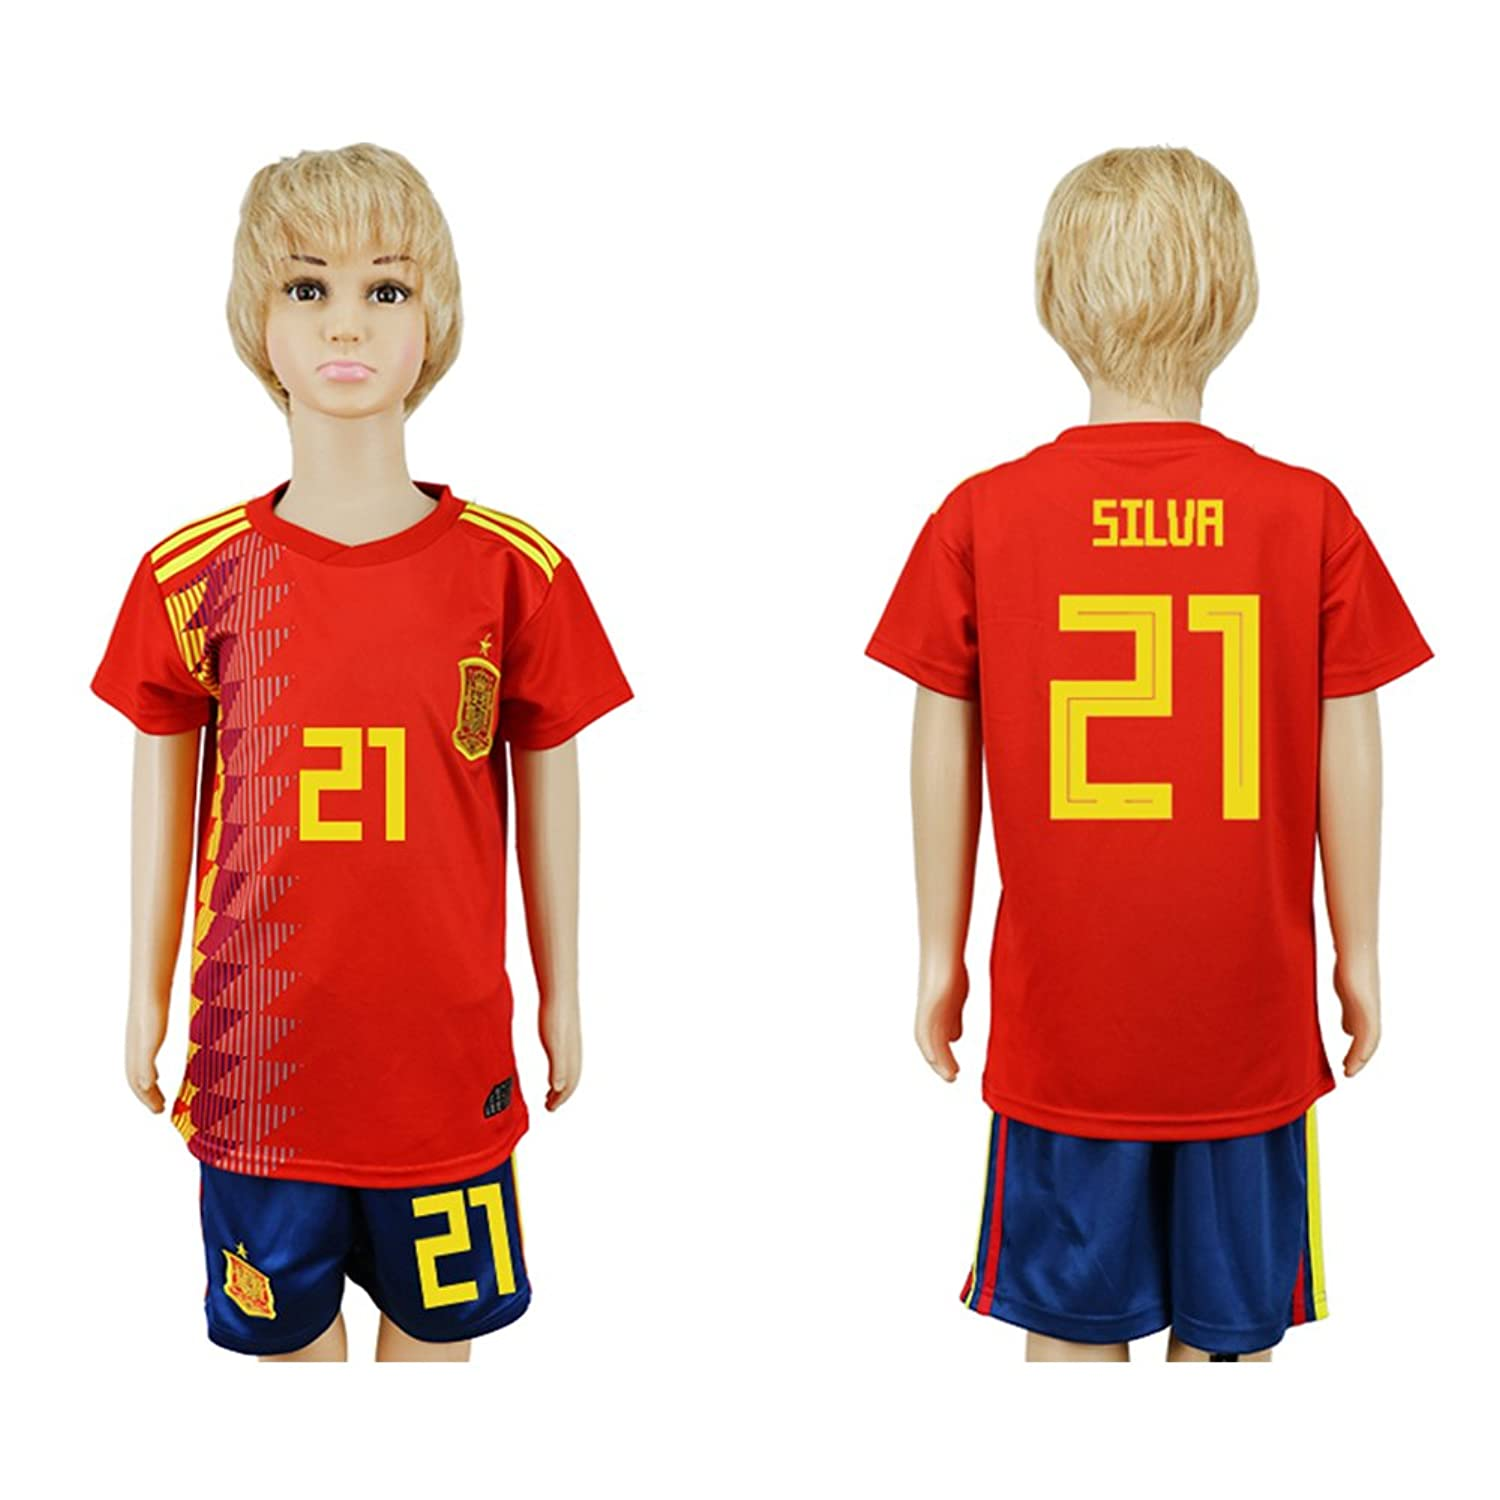 Soc.Meku SHIRT ボーイズ B07BF77GYB26# (10 to 11 Years Old)